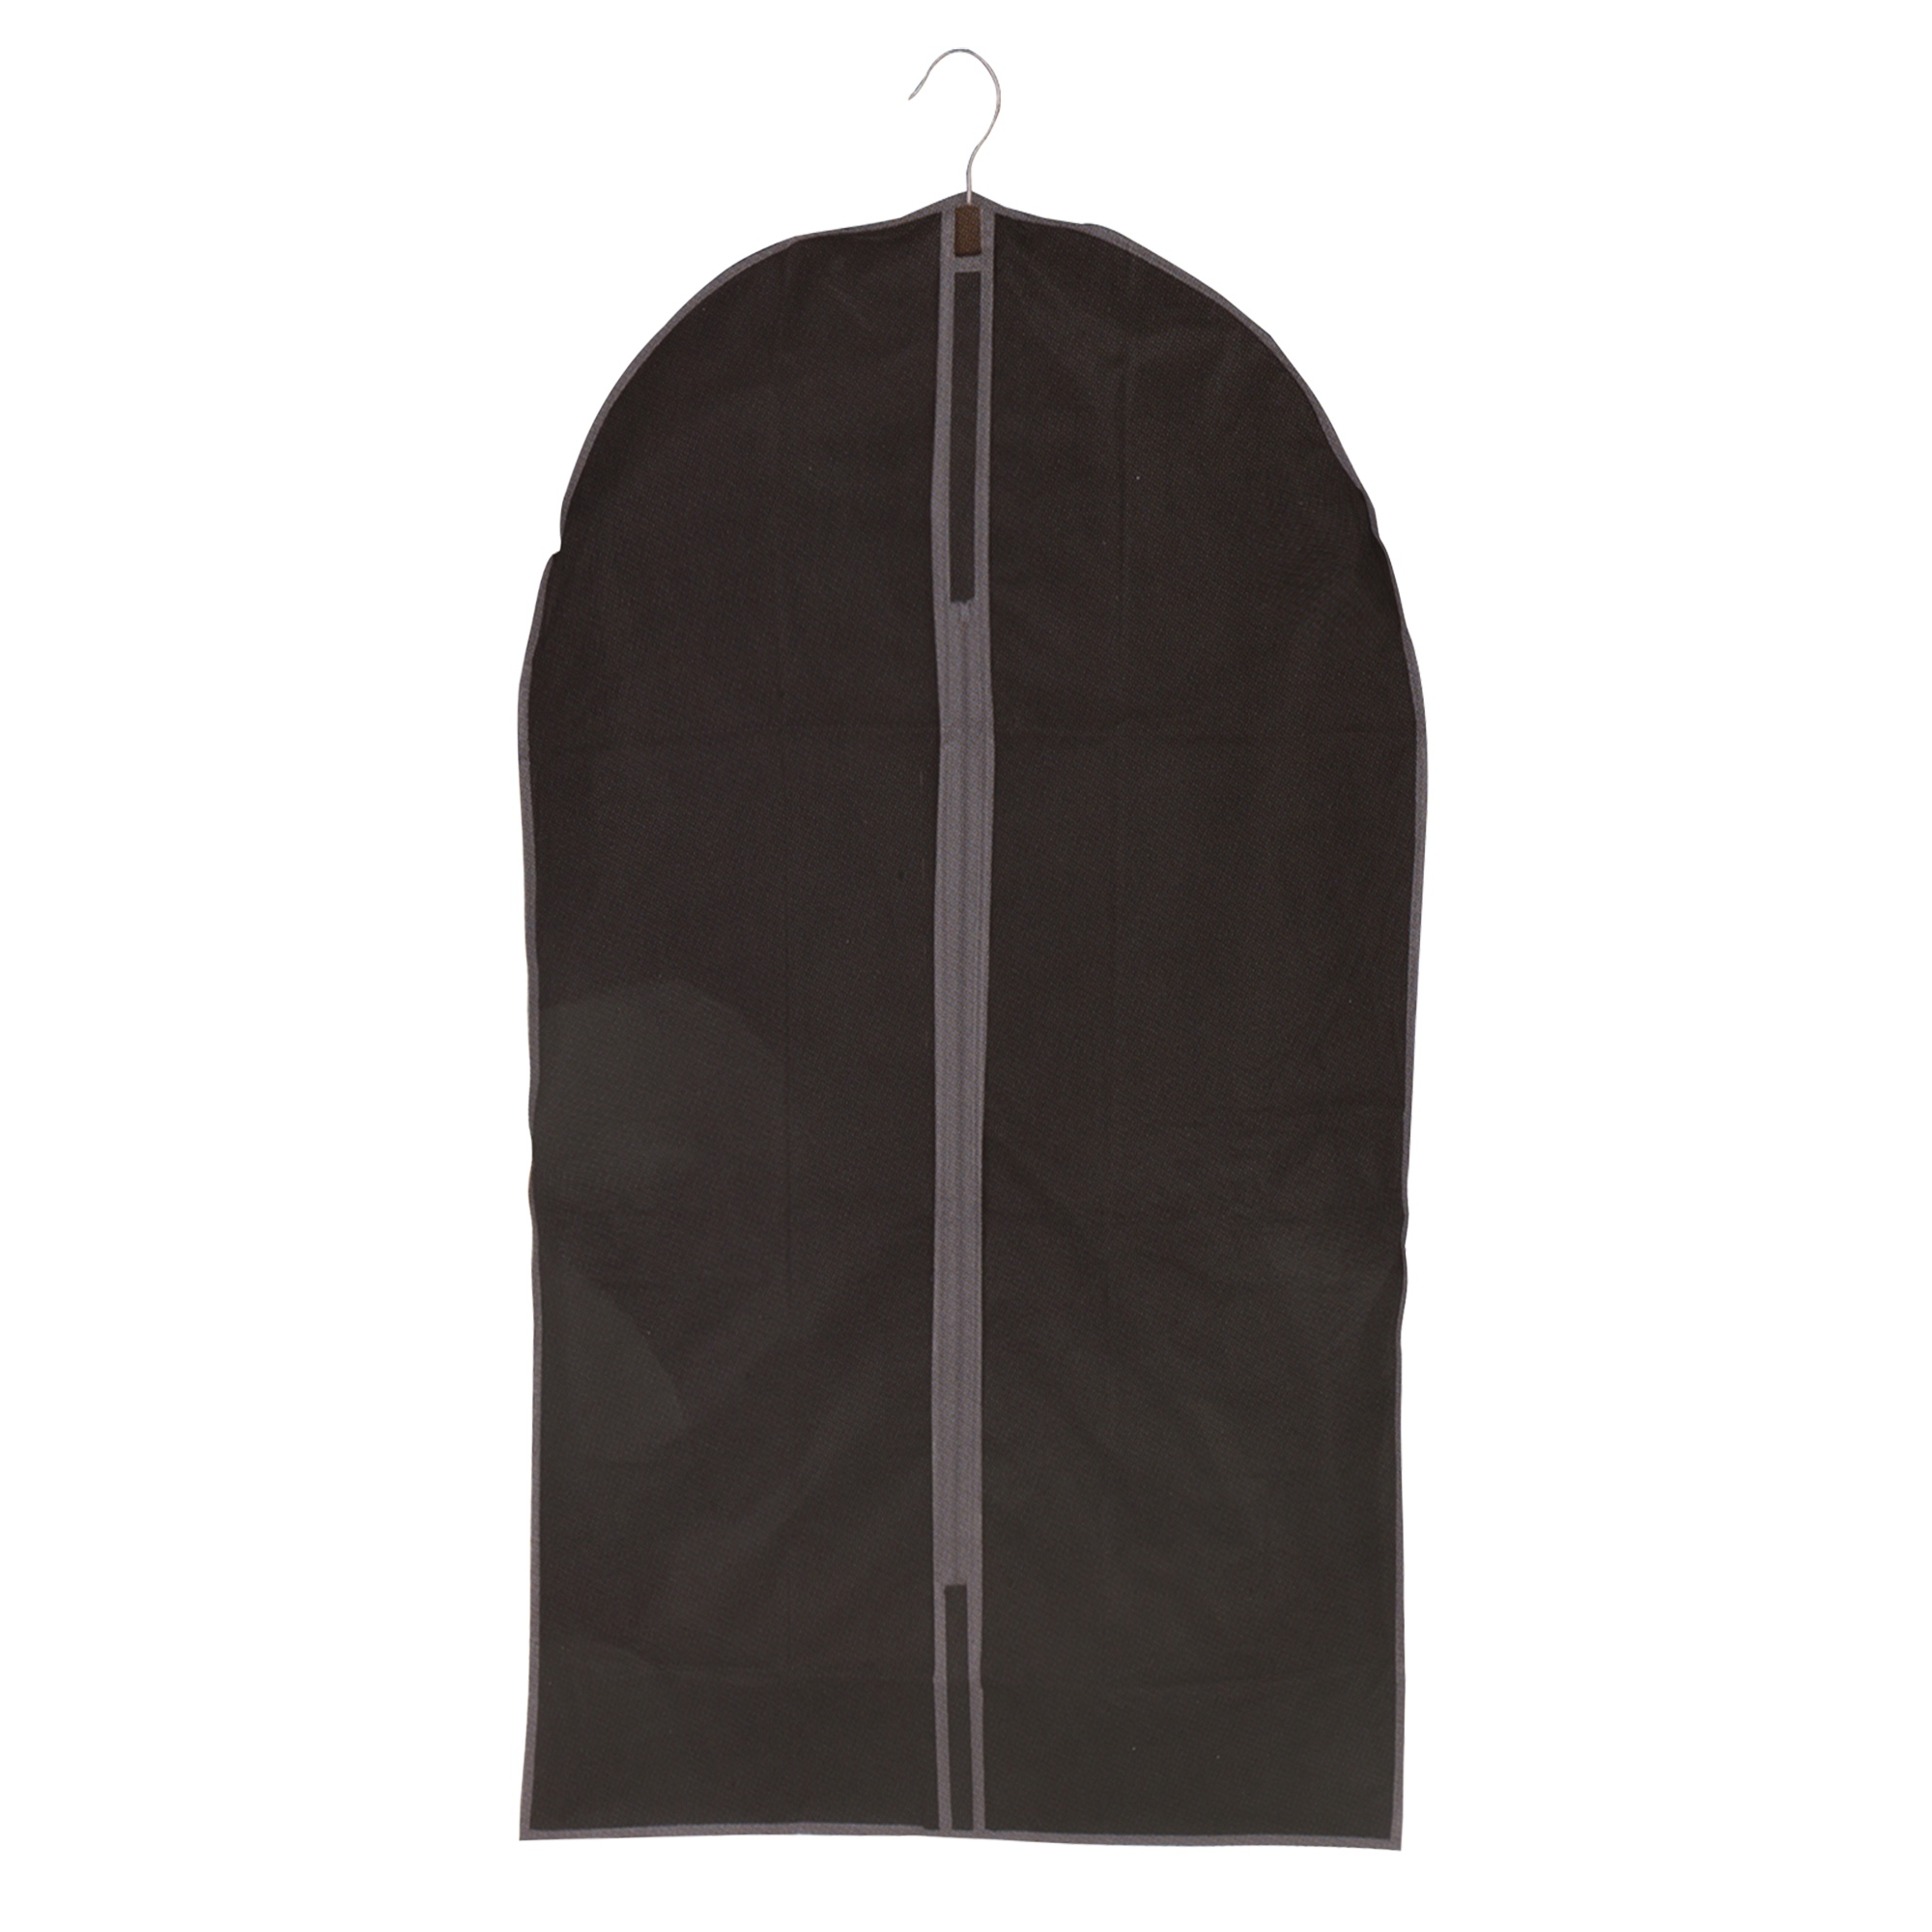 Waterproof Travel Garment Bag For Suit Clothes By New Brand